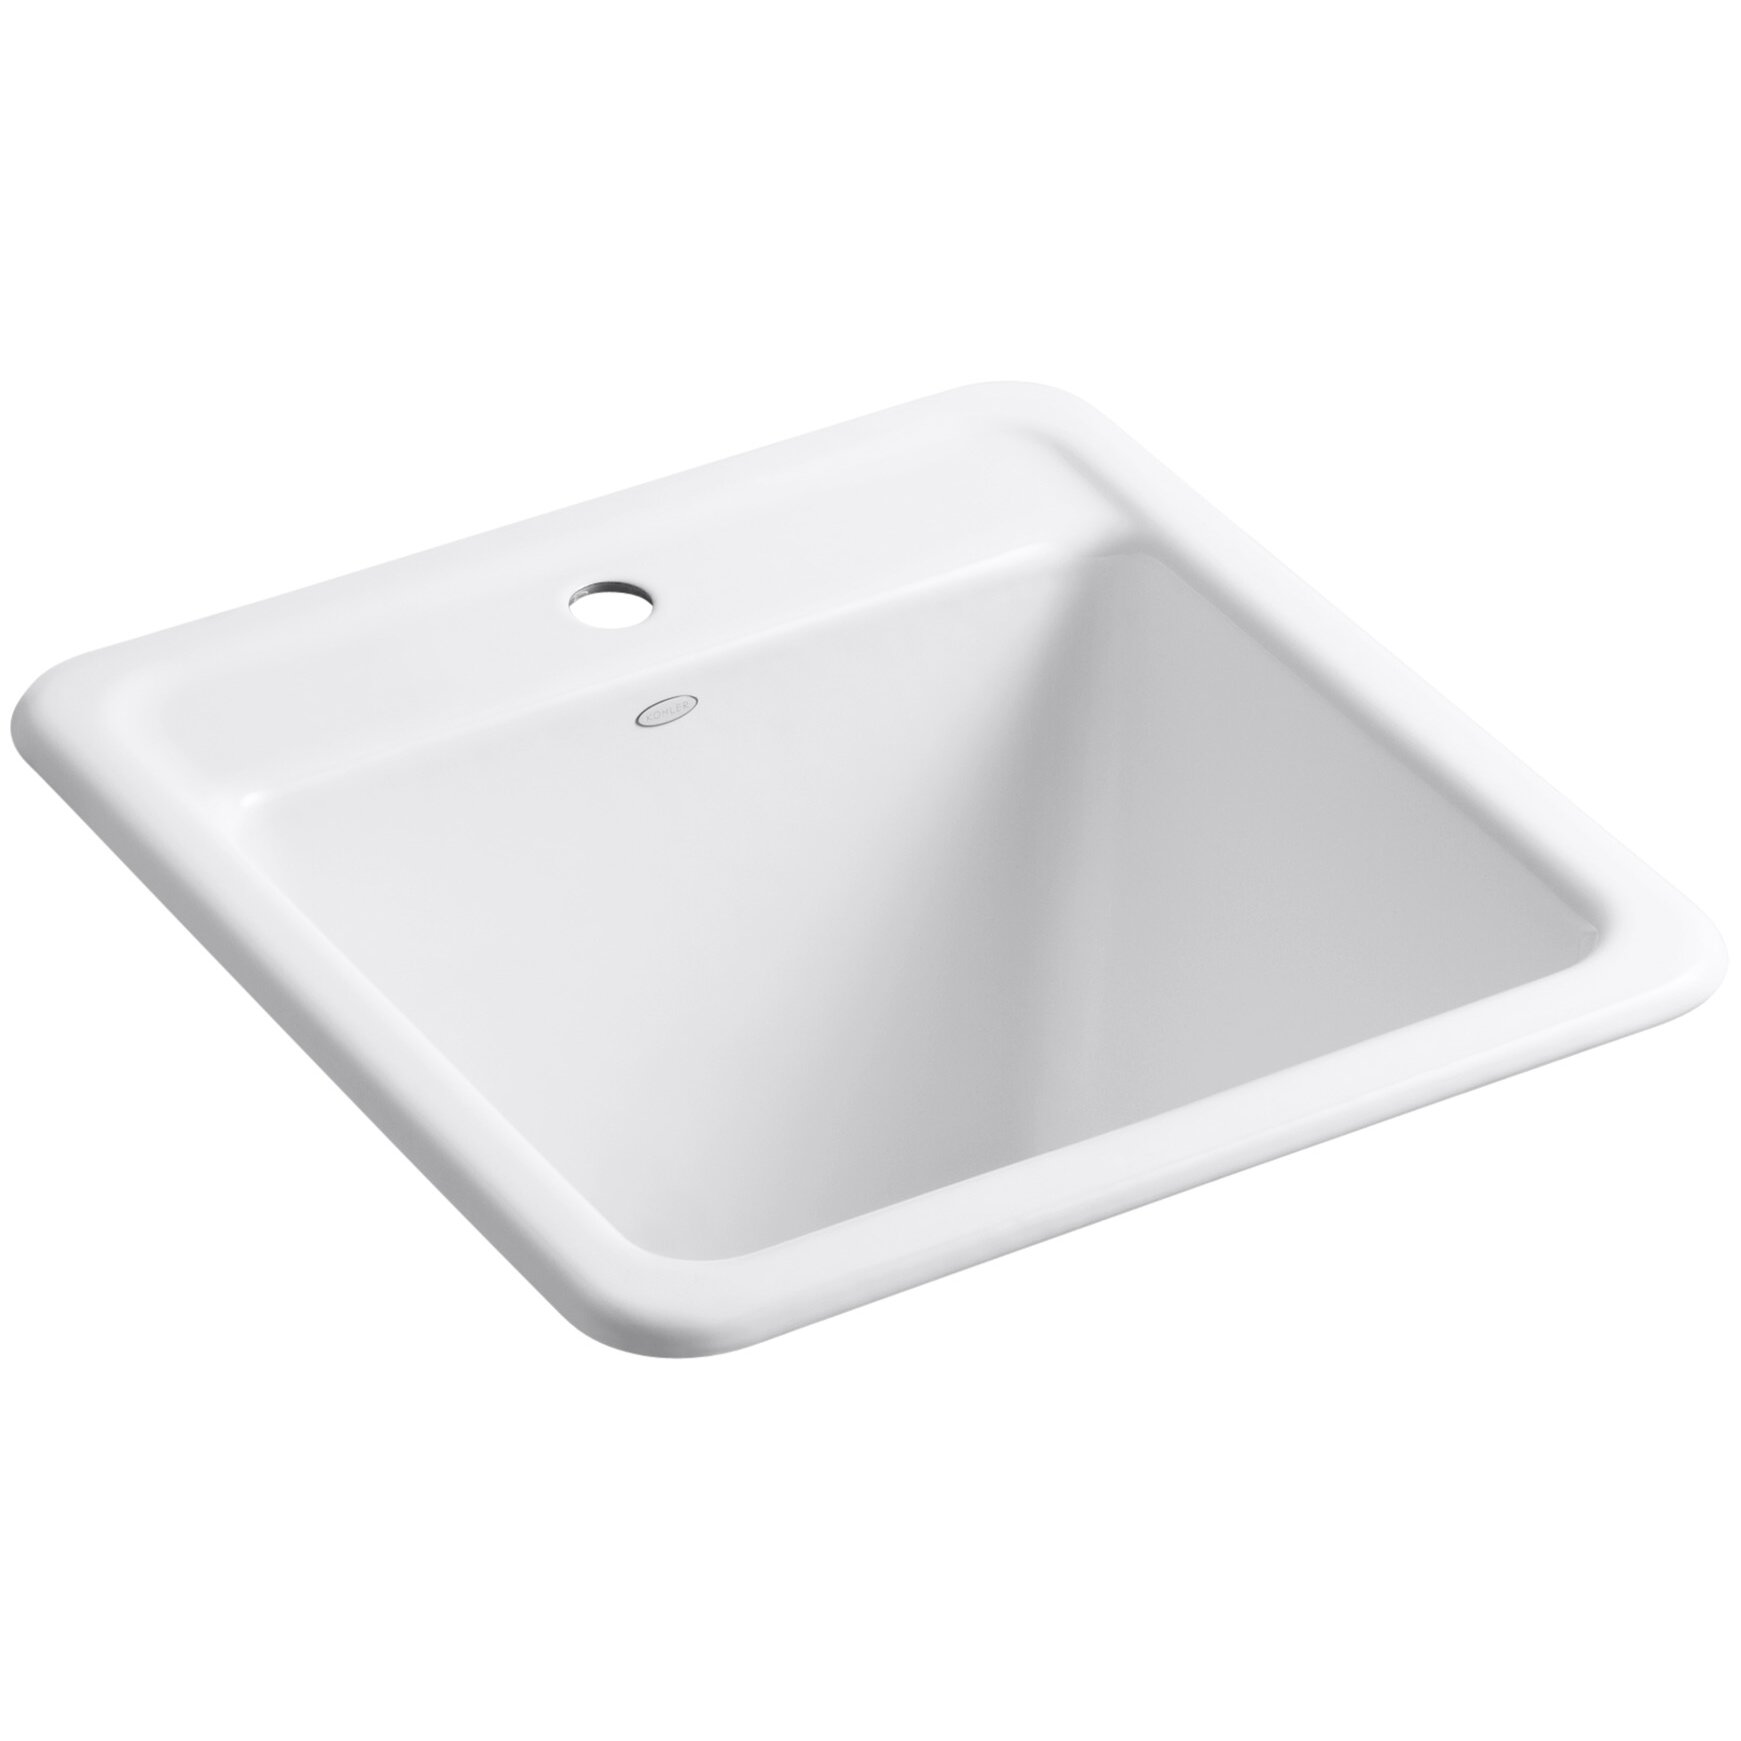 ... Park Falls Top-Mount/Undermount Utility Sink with Single Faucet Hole